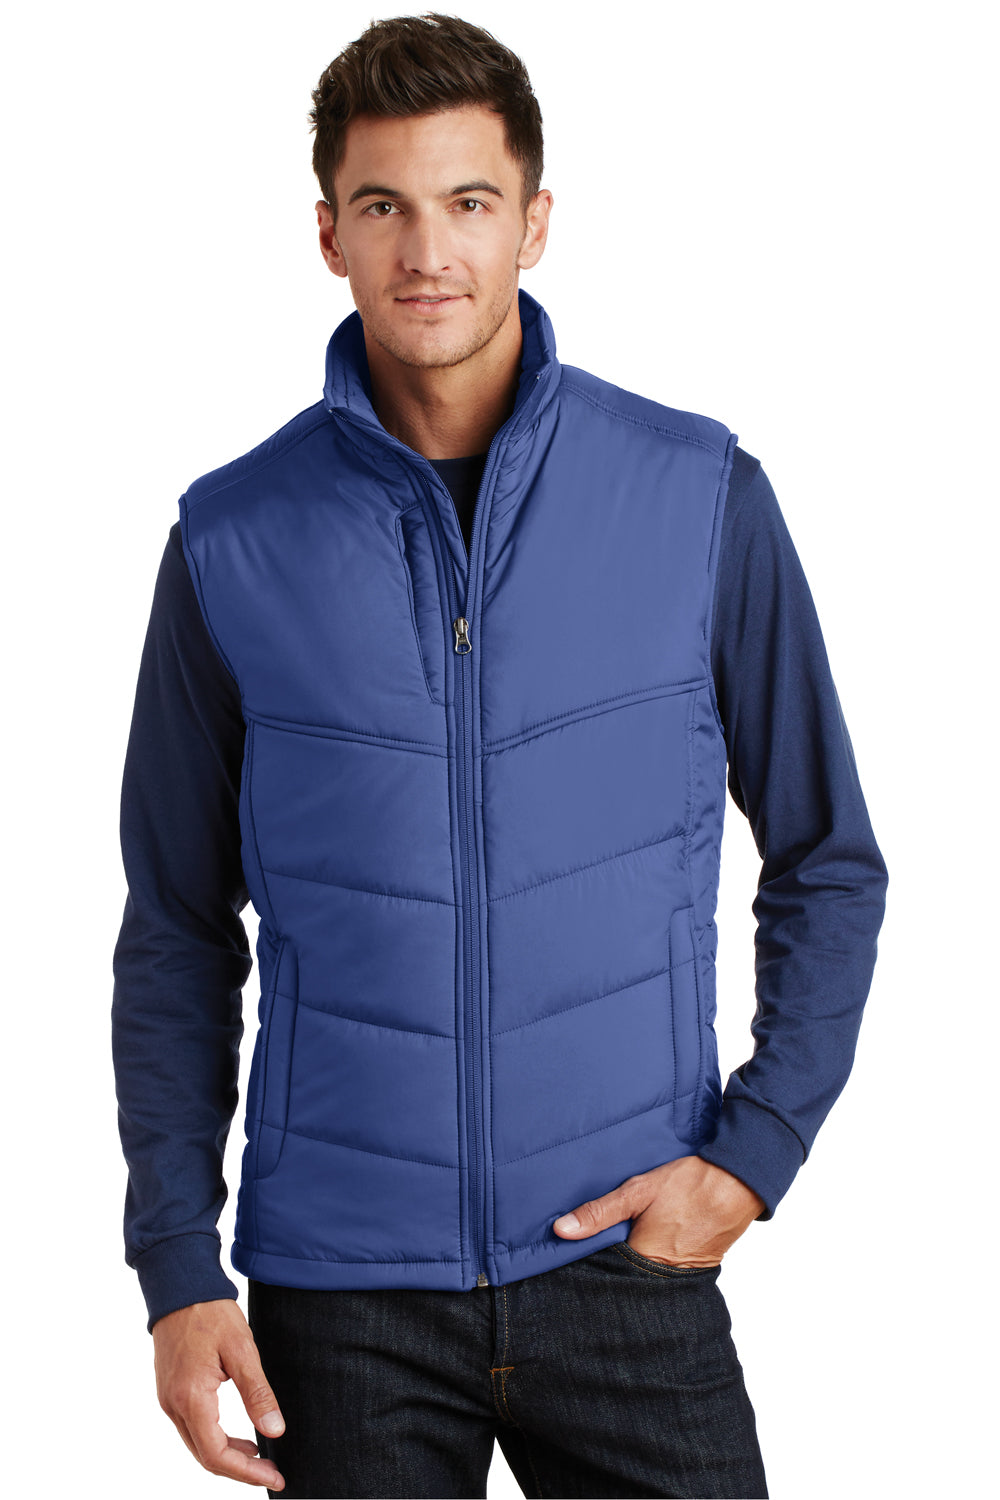 Port Authority J709 Mens Wind & Water Resistant Full Zip Puffy Vest Mediterranean Blue Front